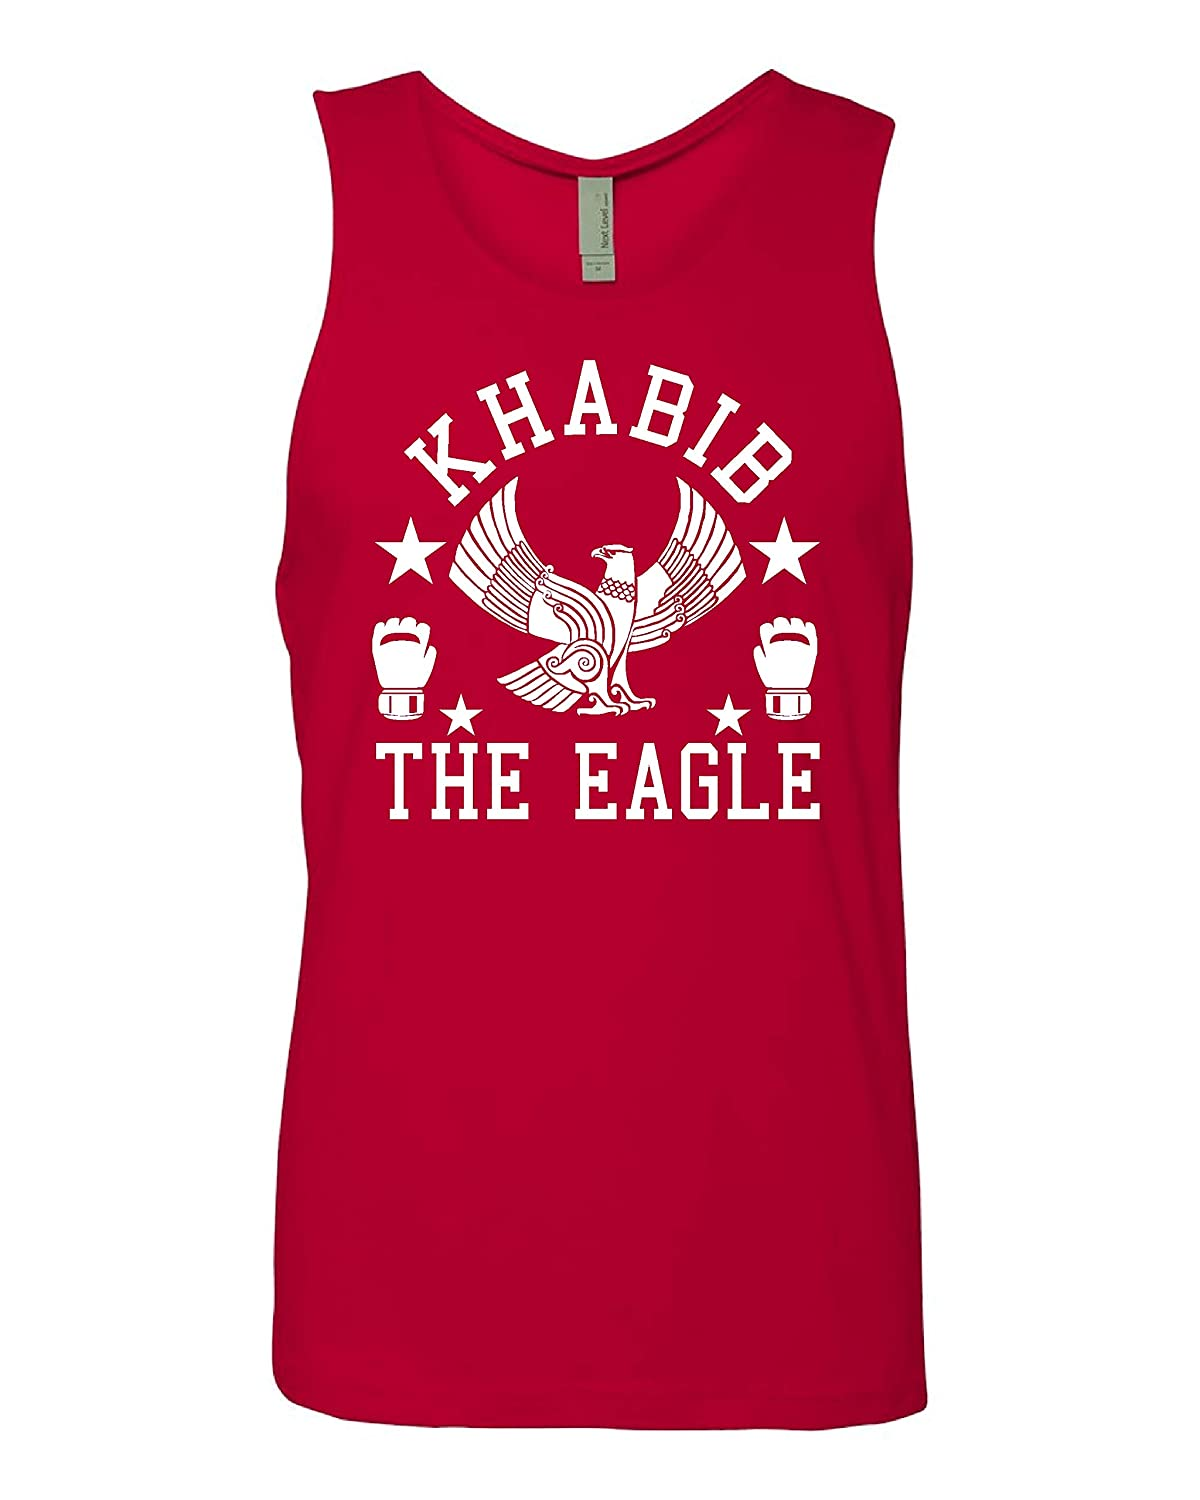 Motivashirts Khabib The Eagle Nurmagomedov Men's Tank Top